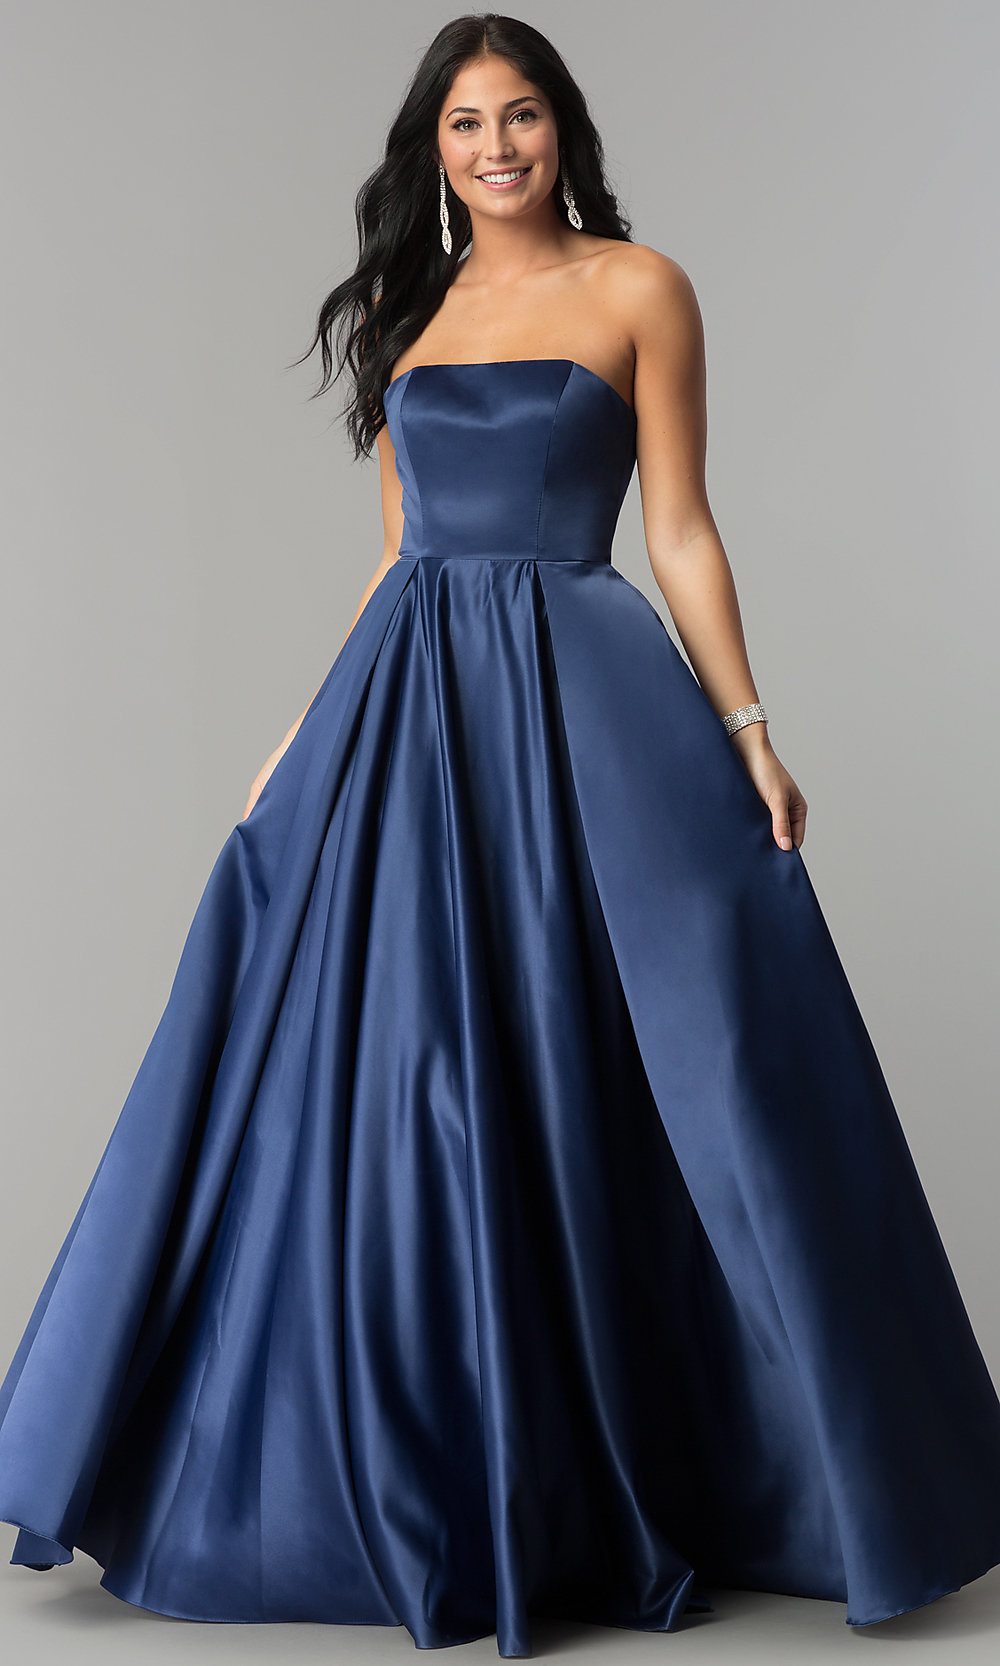 ball gown prom strapless dress corset dresses gowns formal satin evening promgirl plus navy lace styles 2211 dq